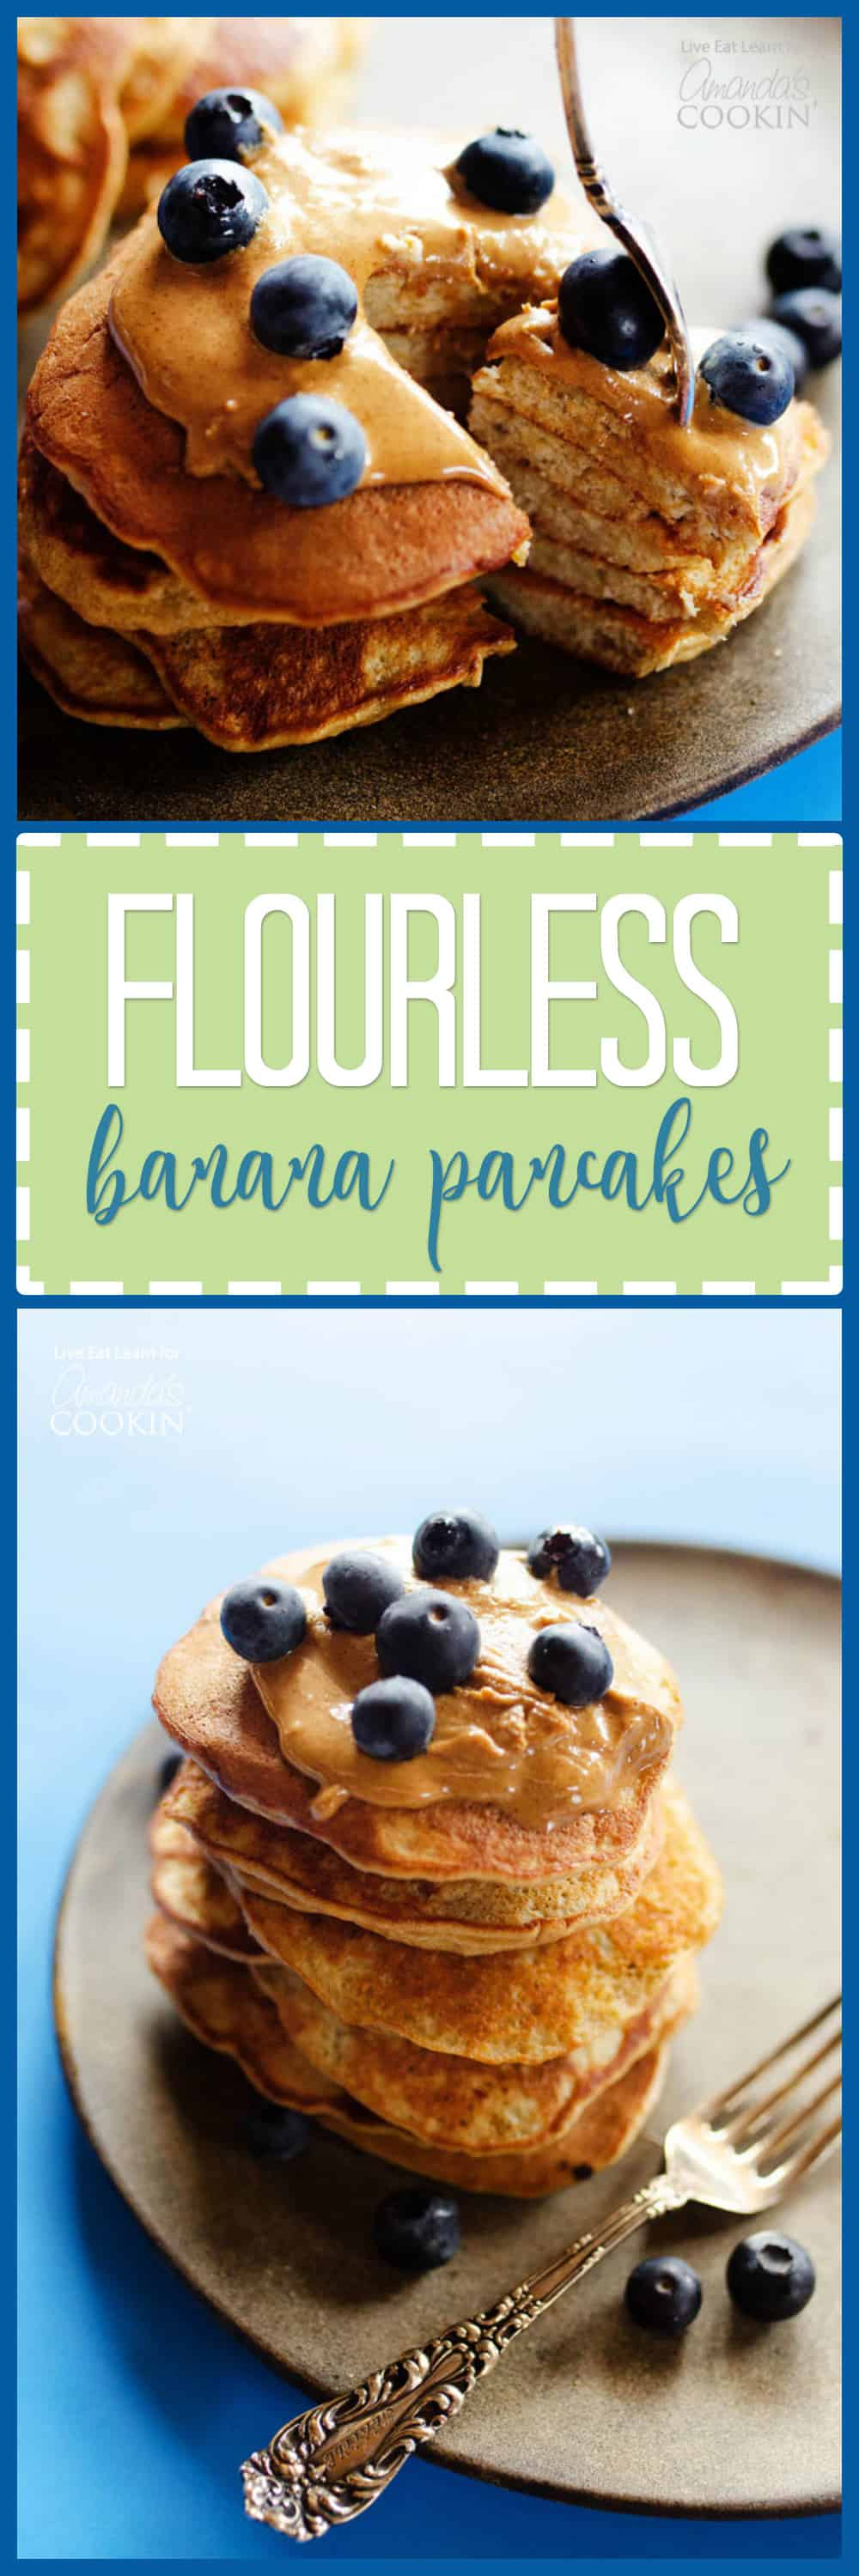 These banana pancakes are packed with protein and taste amazing, but they don't have any flour! Your family will never be able to tell the difference.